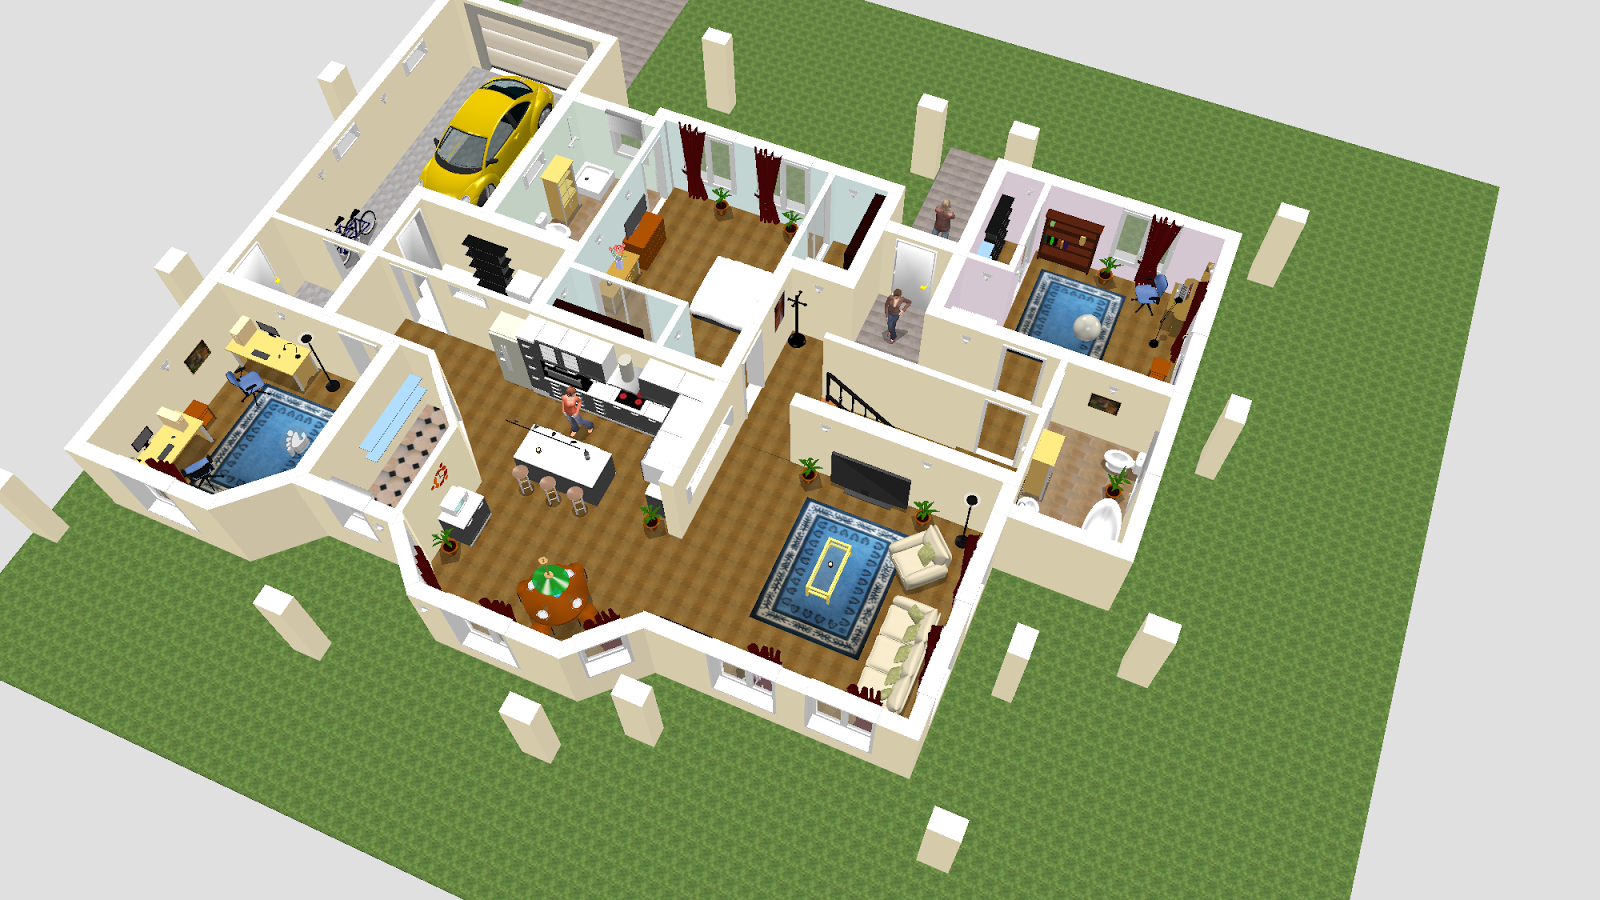 Sweet home design 3d this wallpapers Home design 3d download